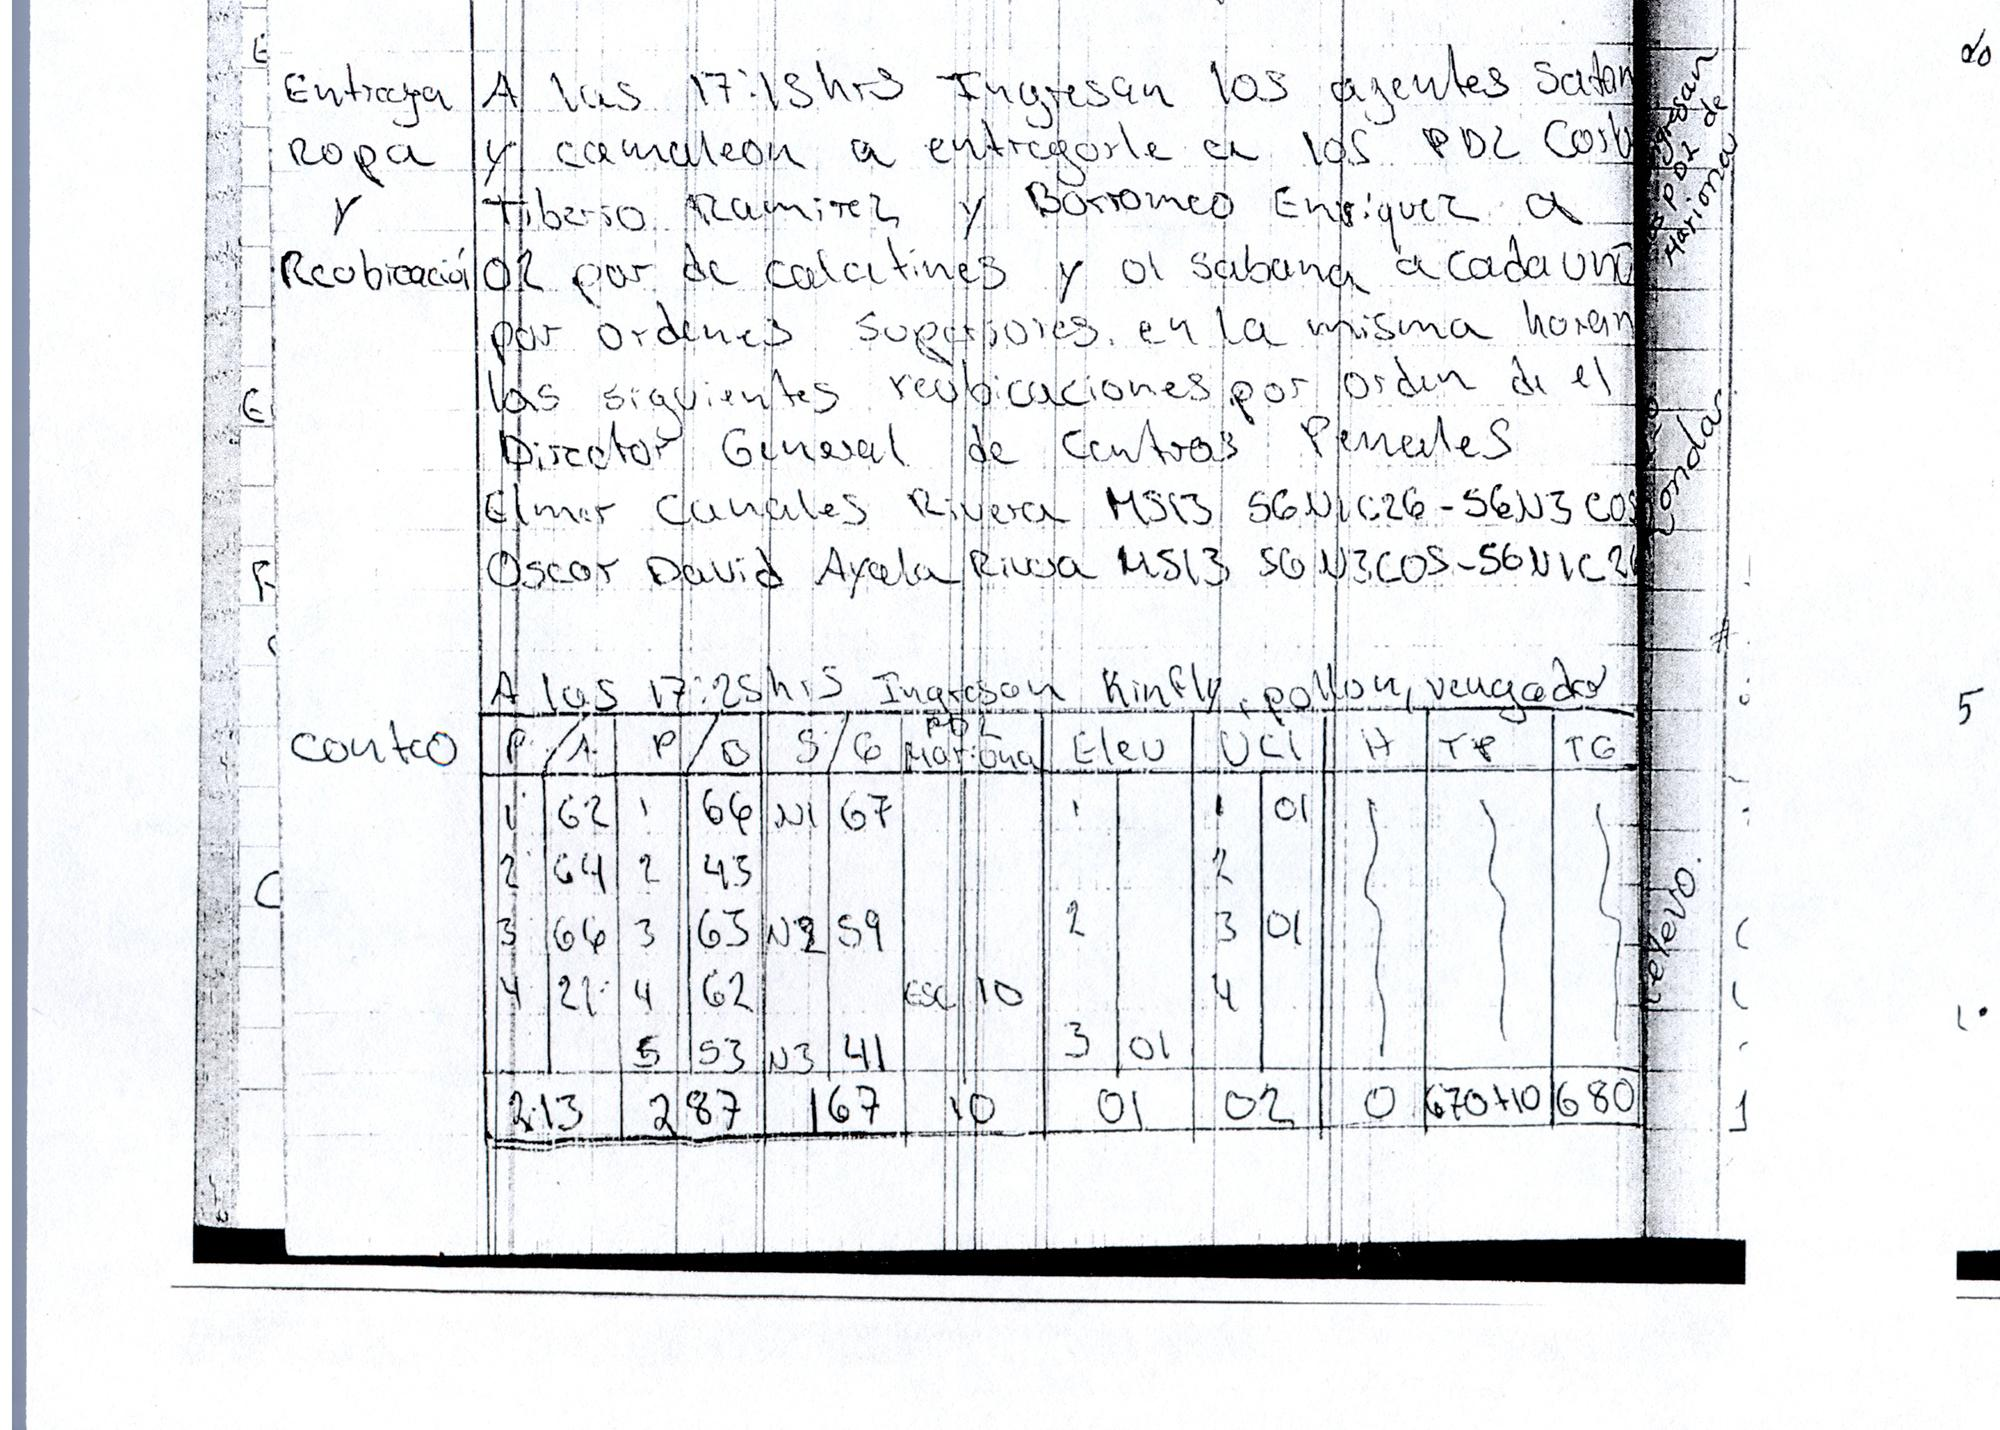 No date listed, 2020 in Zacatecoluca. Relocations and clothing distribution. Osiris Luna arrived at 4 pm for different activities. A group of agents gave clothing to Tiberio Ramírez, alias Diablo, and Borromeo Enrique Henríquez, alias Snyder. The record also details cell block transfers ordered by Director General Luna.